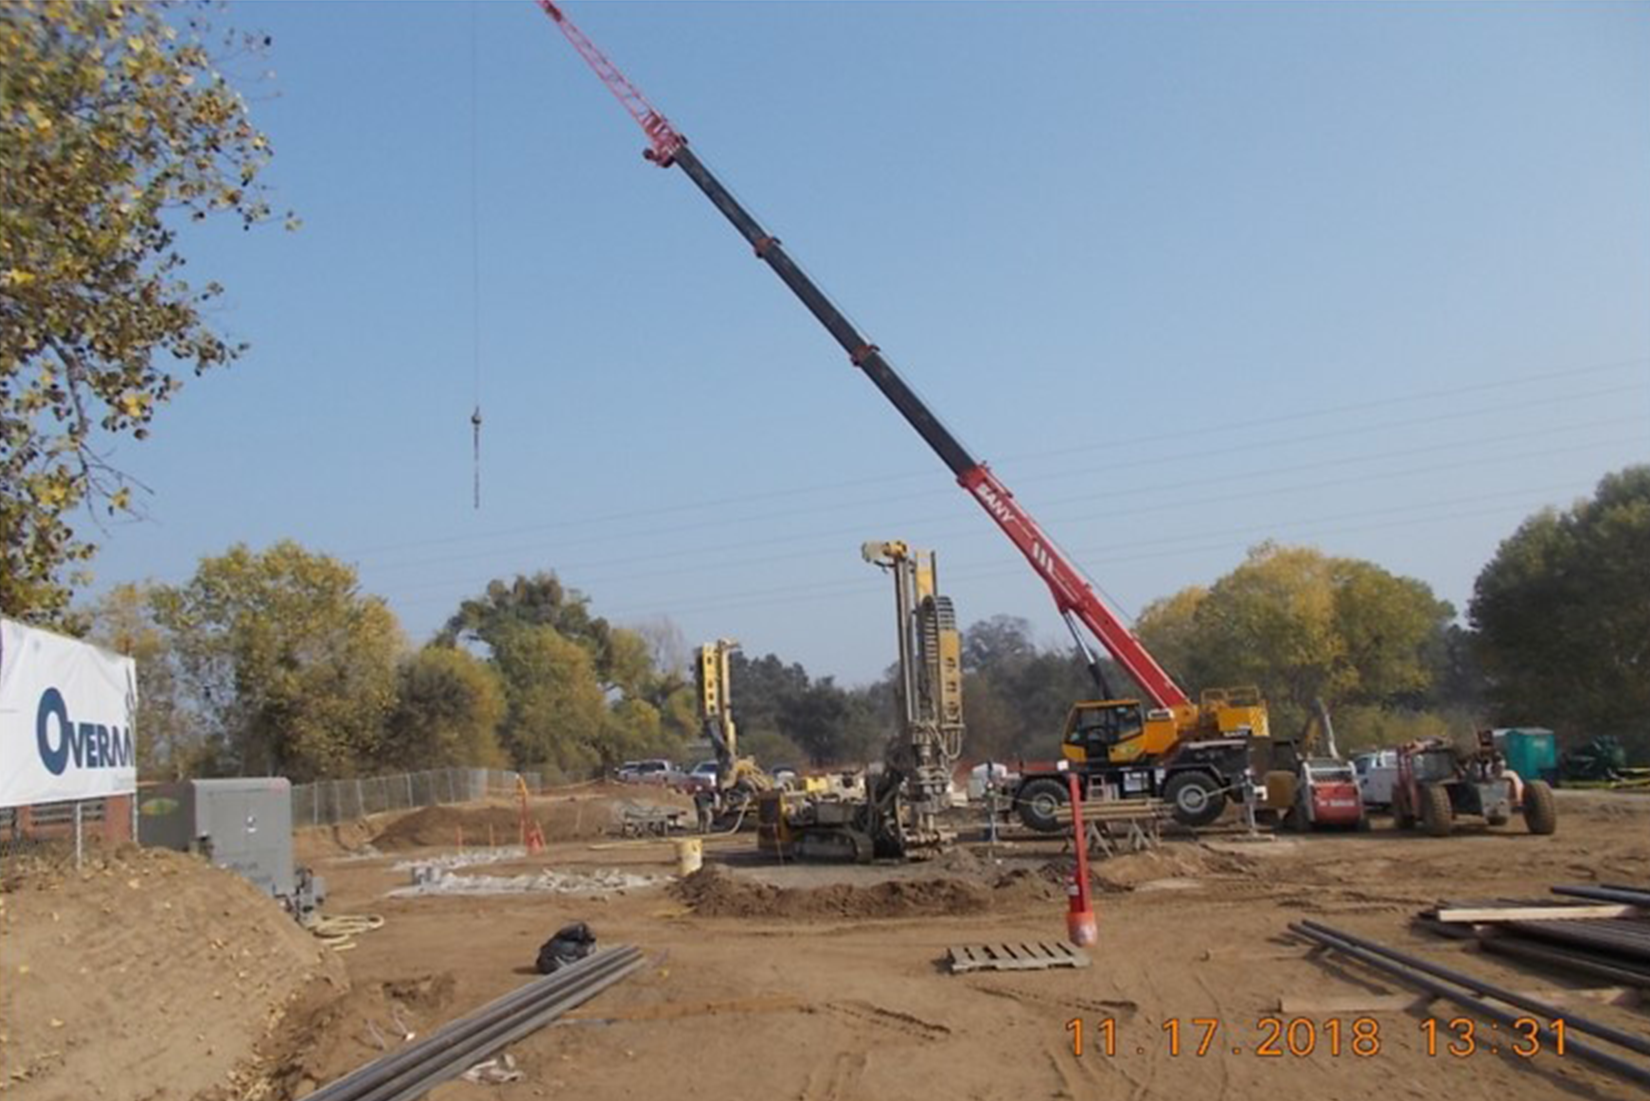 Freeze Pipe being Installed in Borehole by Crane